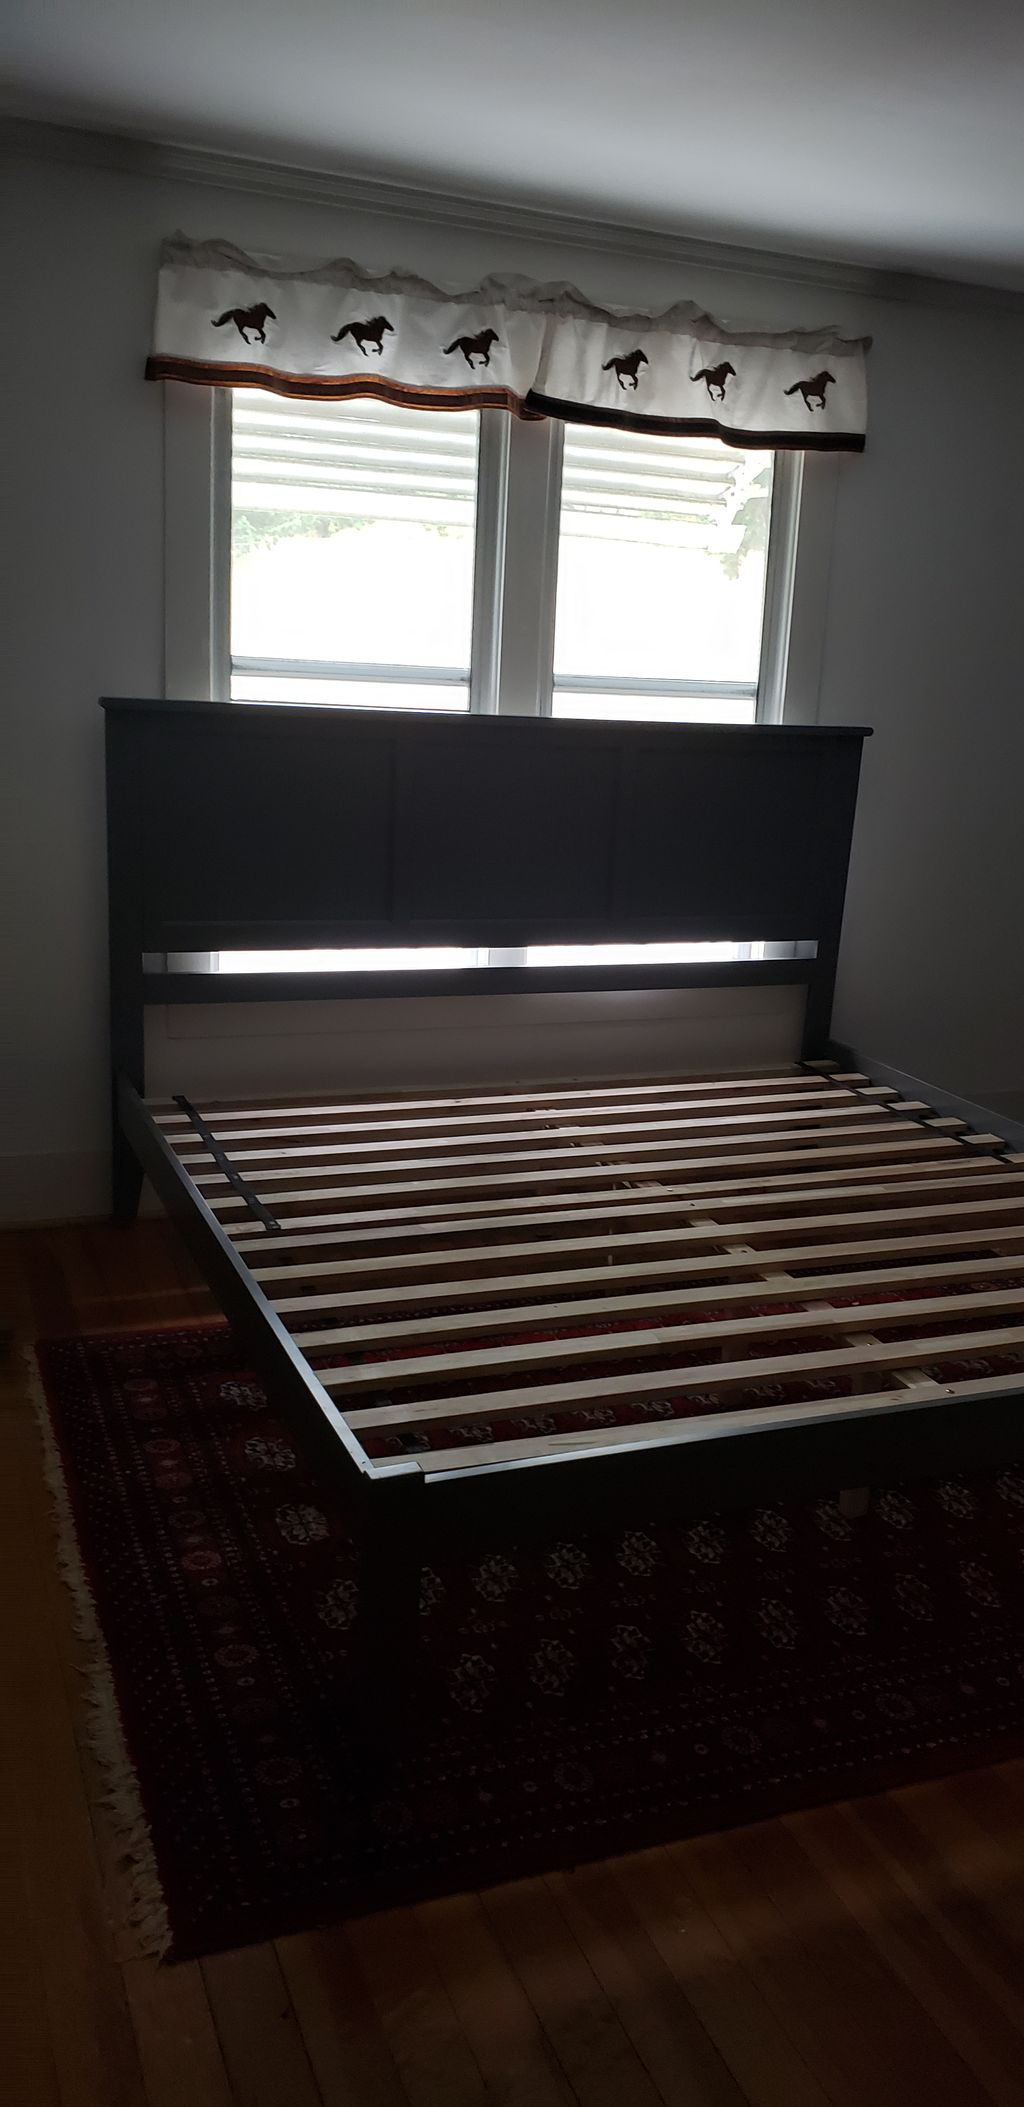 Two king bed frames